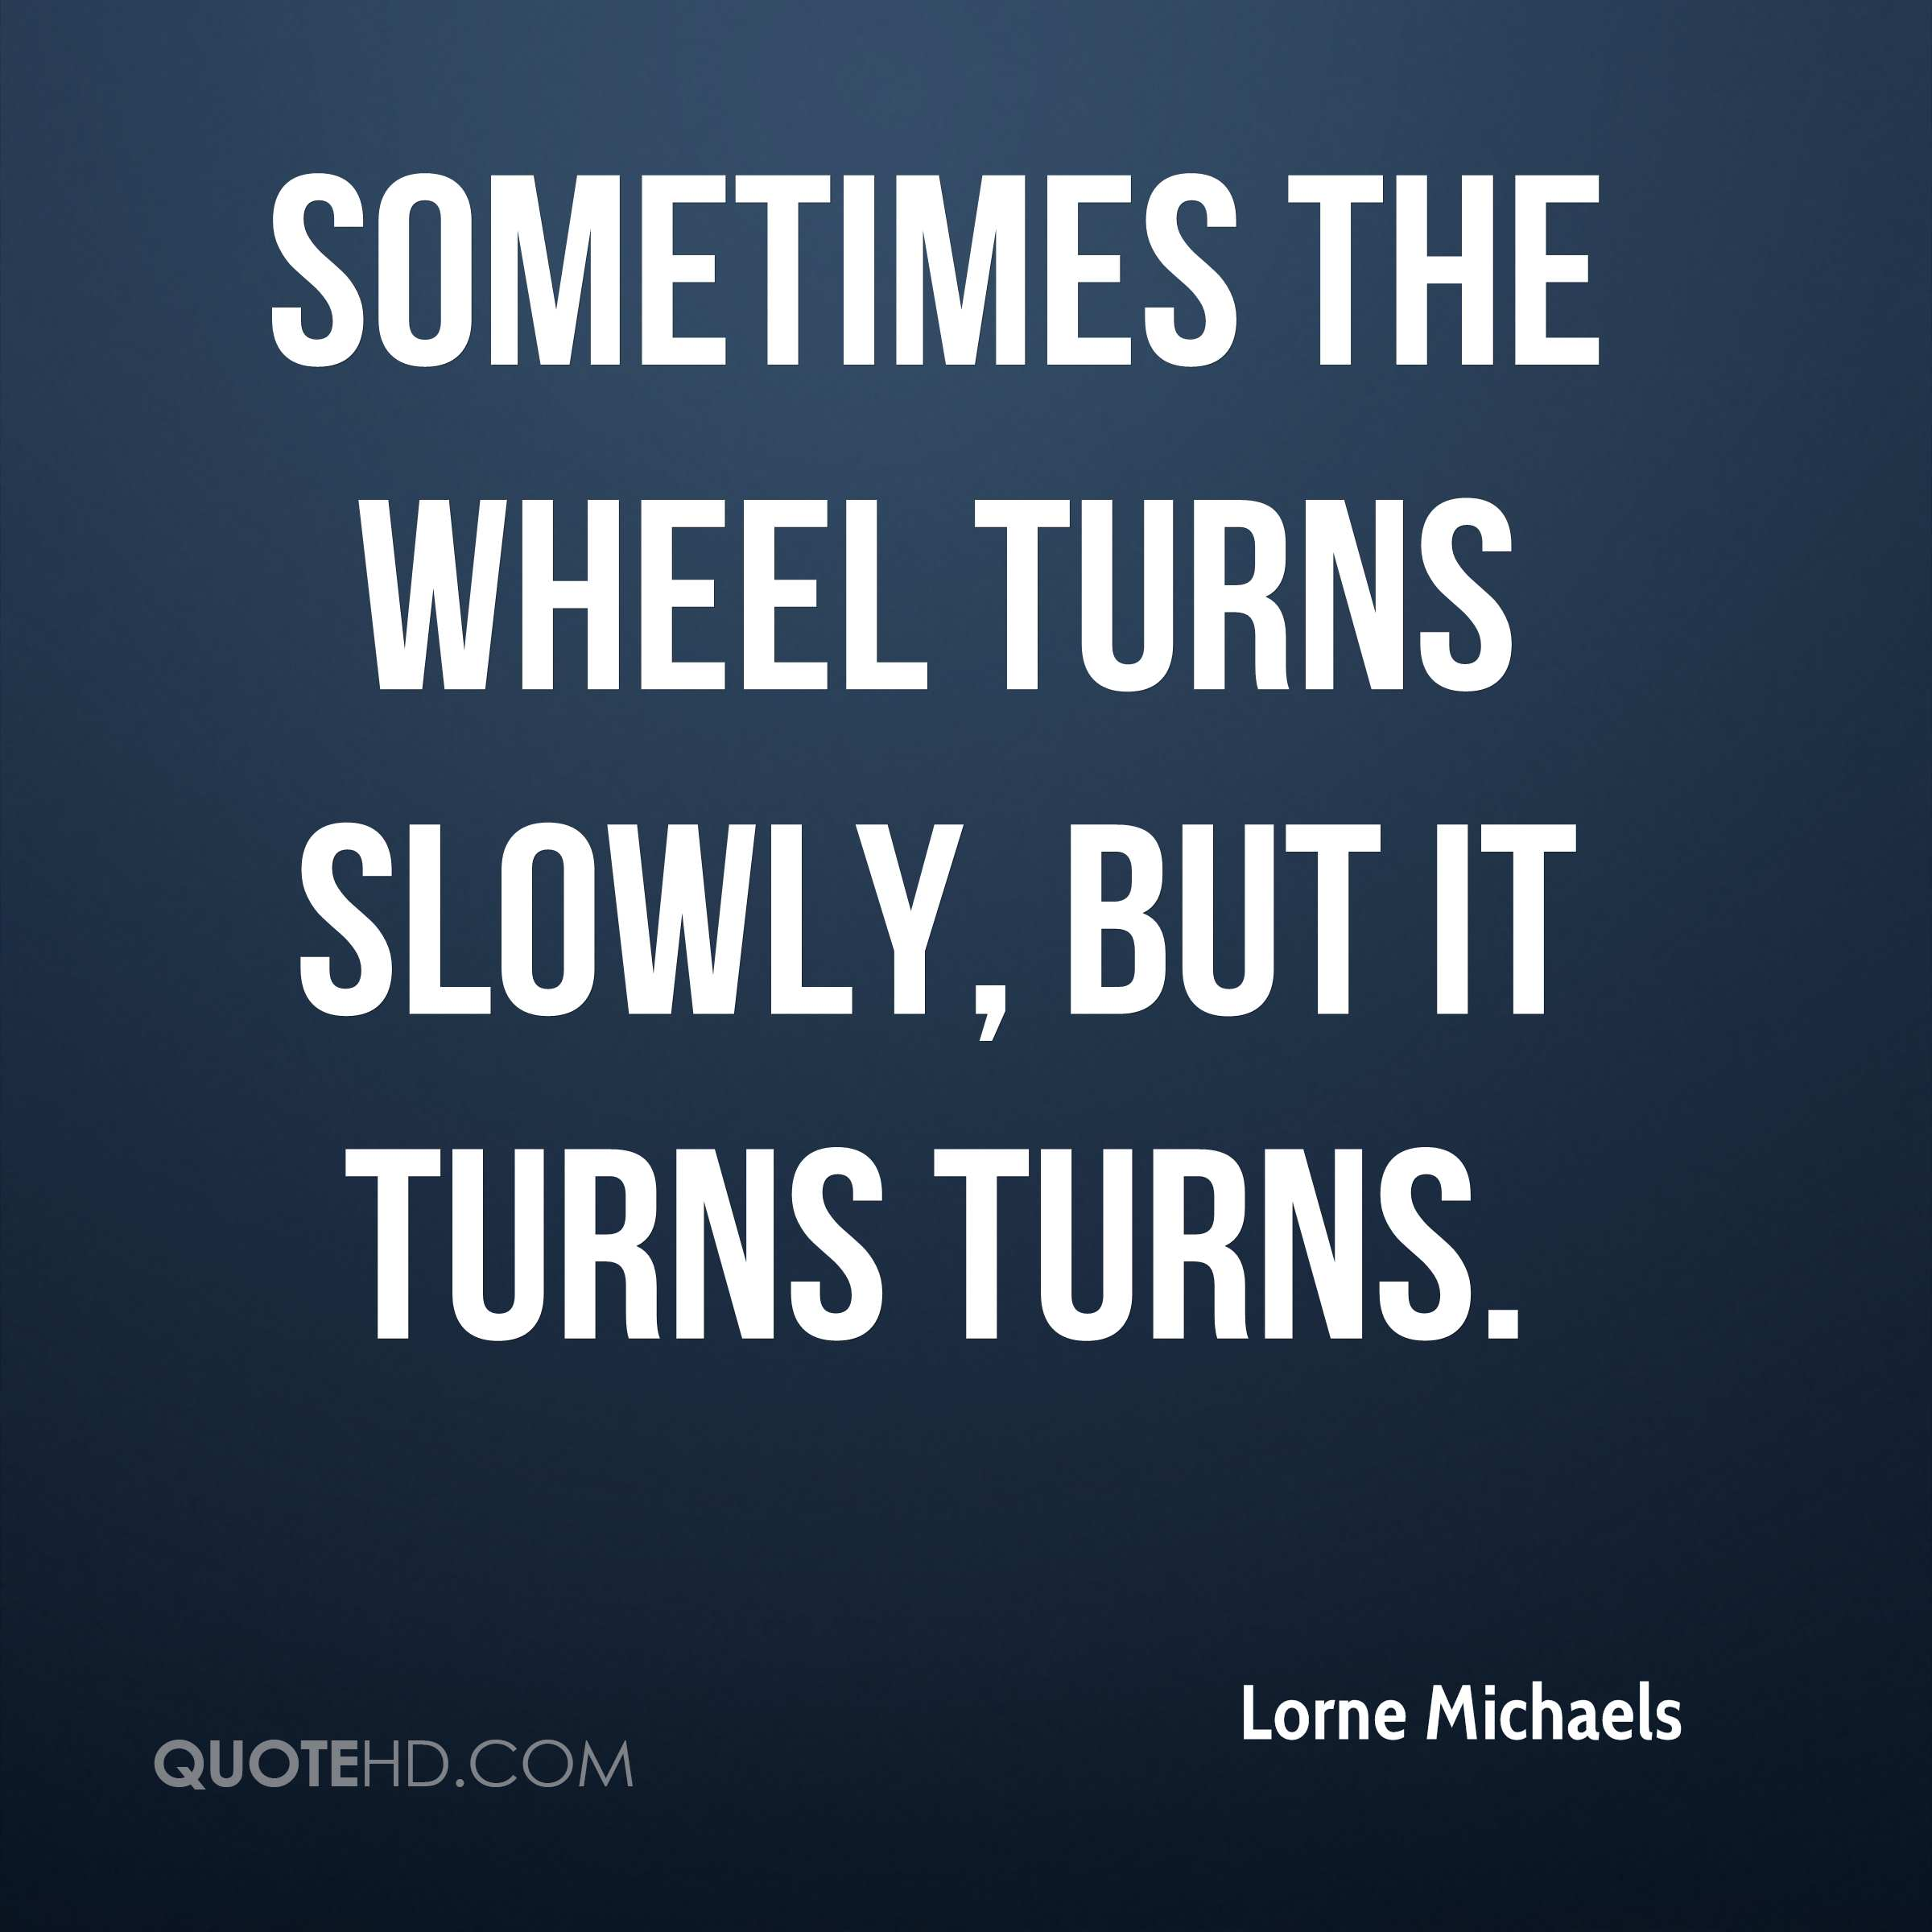 Sometimes the wheel turns slowly, but it turns turns.